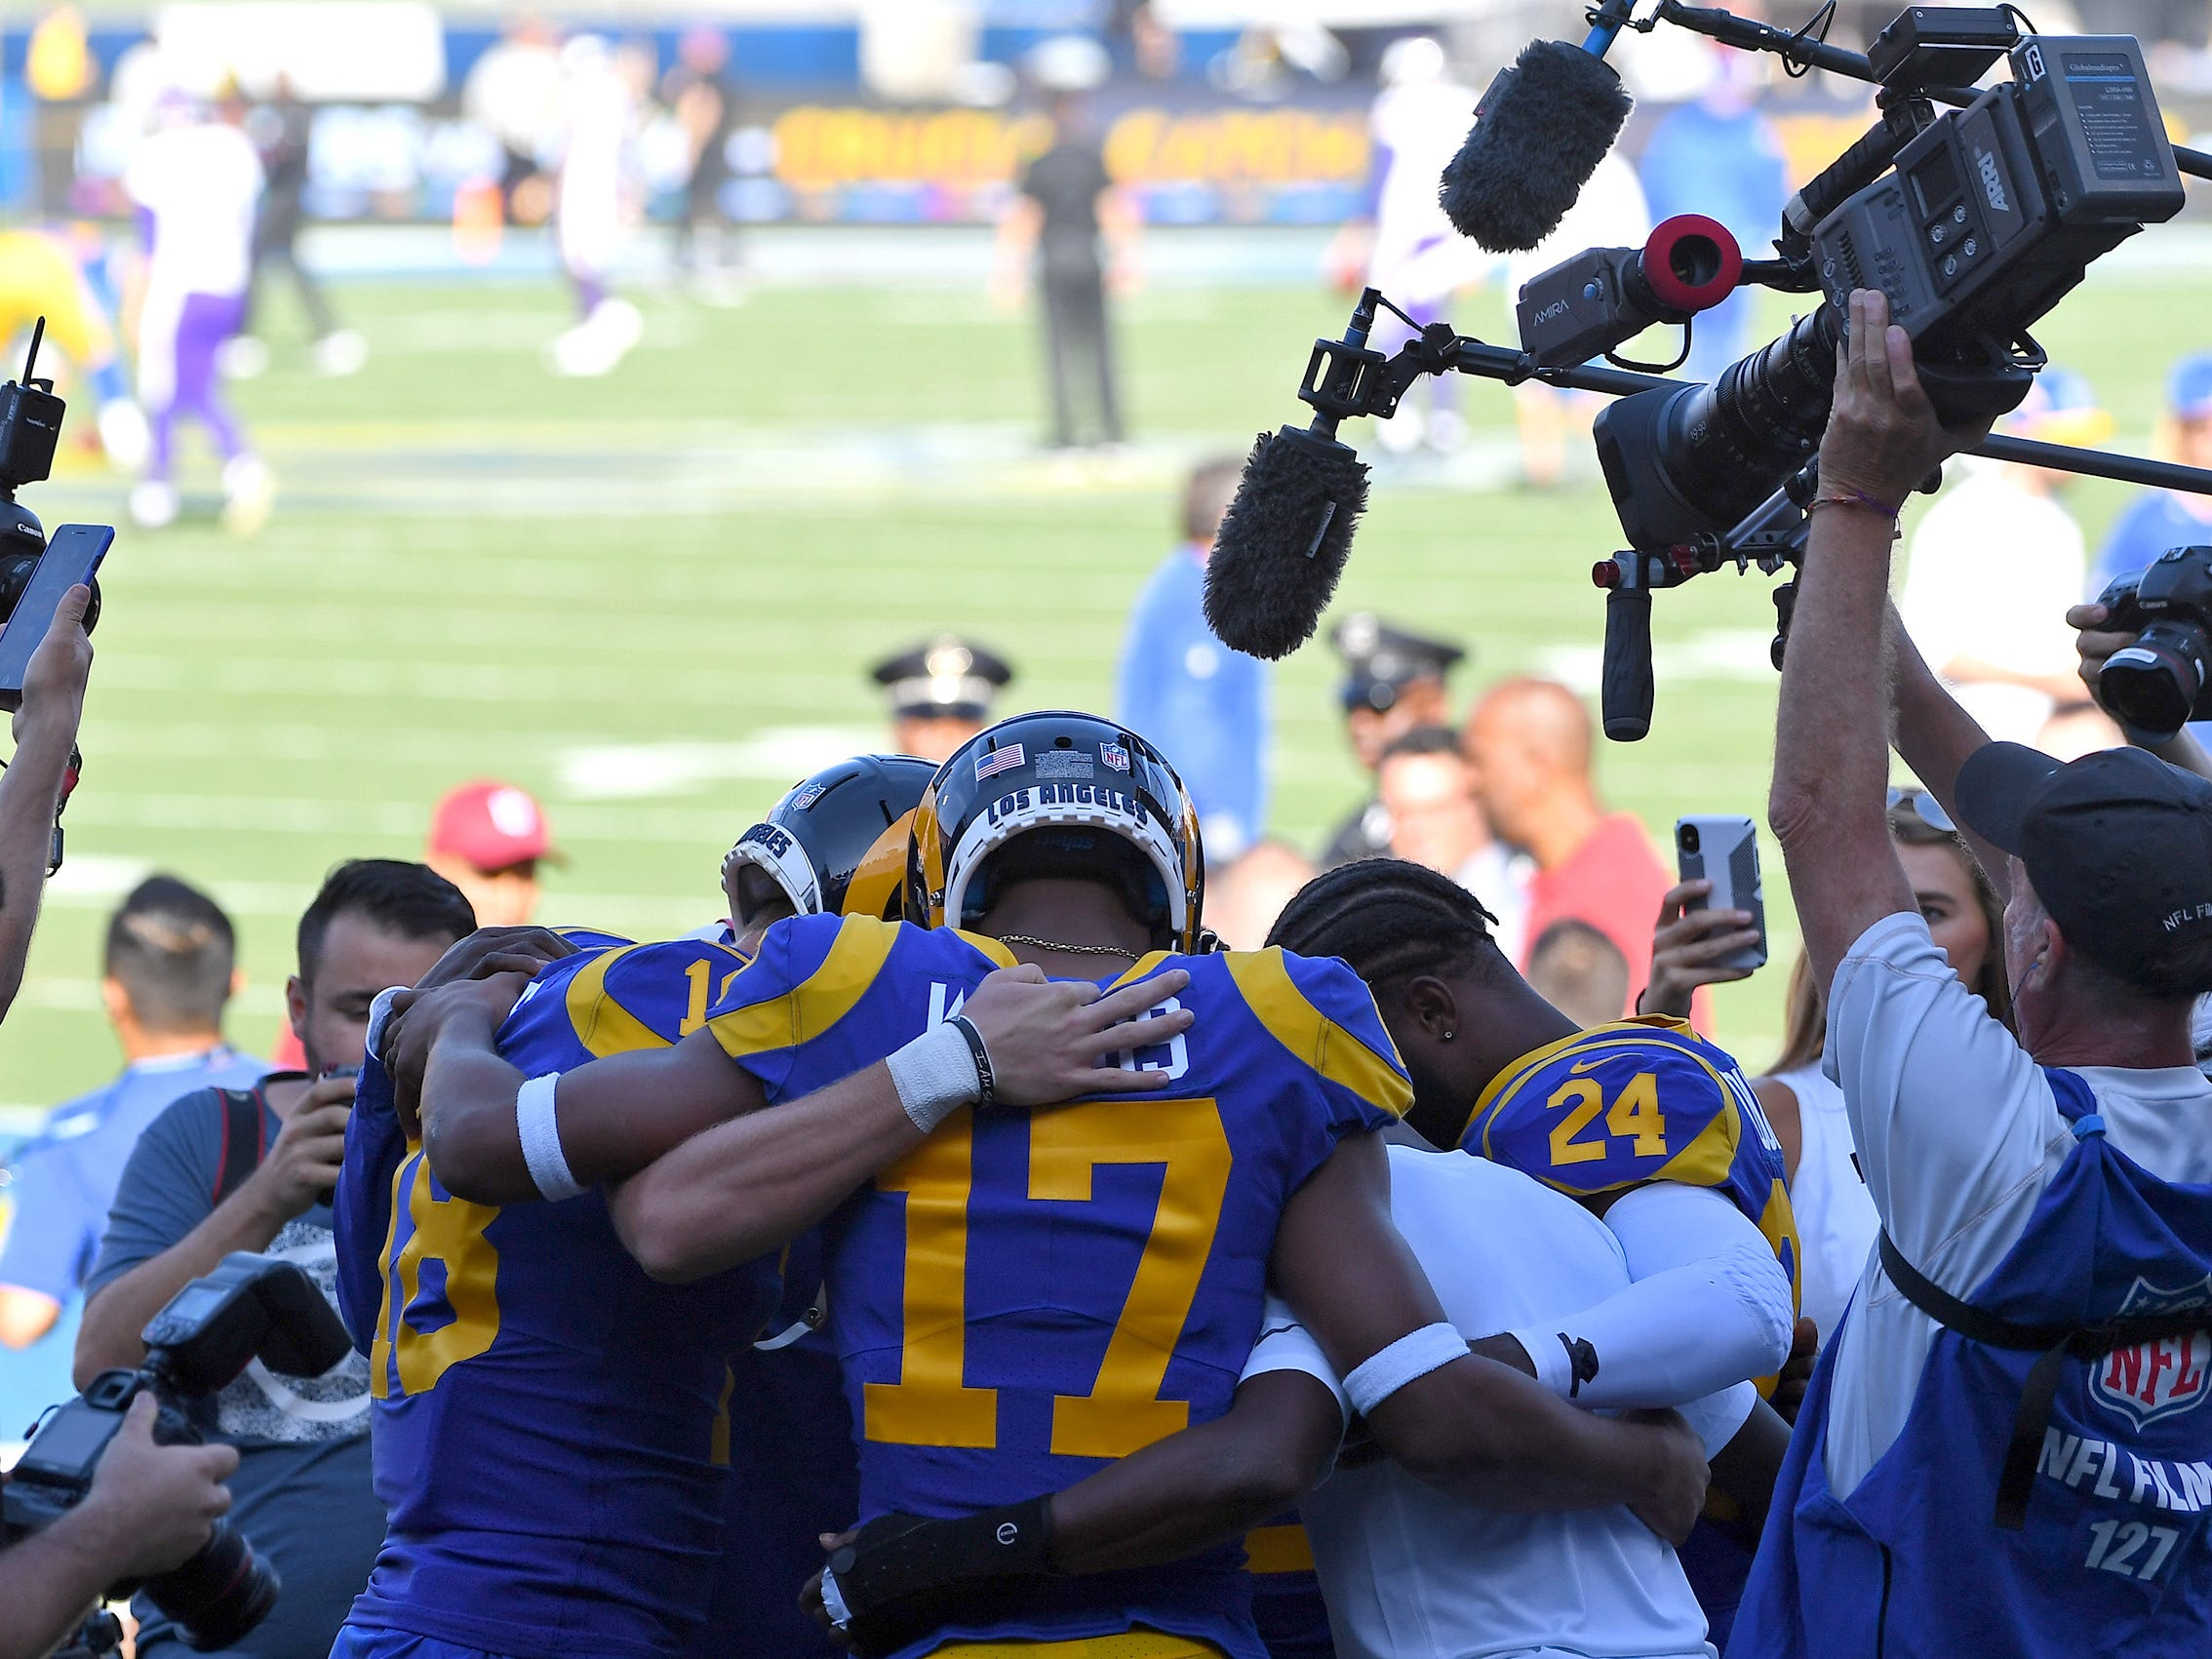 The Los Angeles Rams' Robert Woods (17), Cooper Kupp (left) and Blake Countess (24) huddle before they take the field to warm up before the game at the Los Angeles Memorial Coliseum.